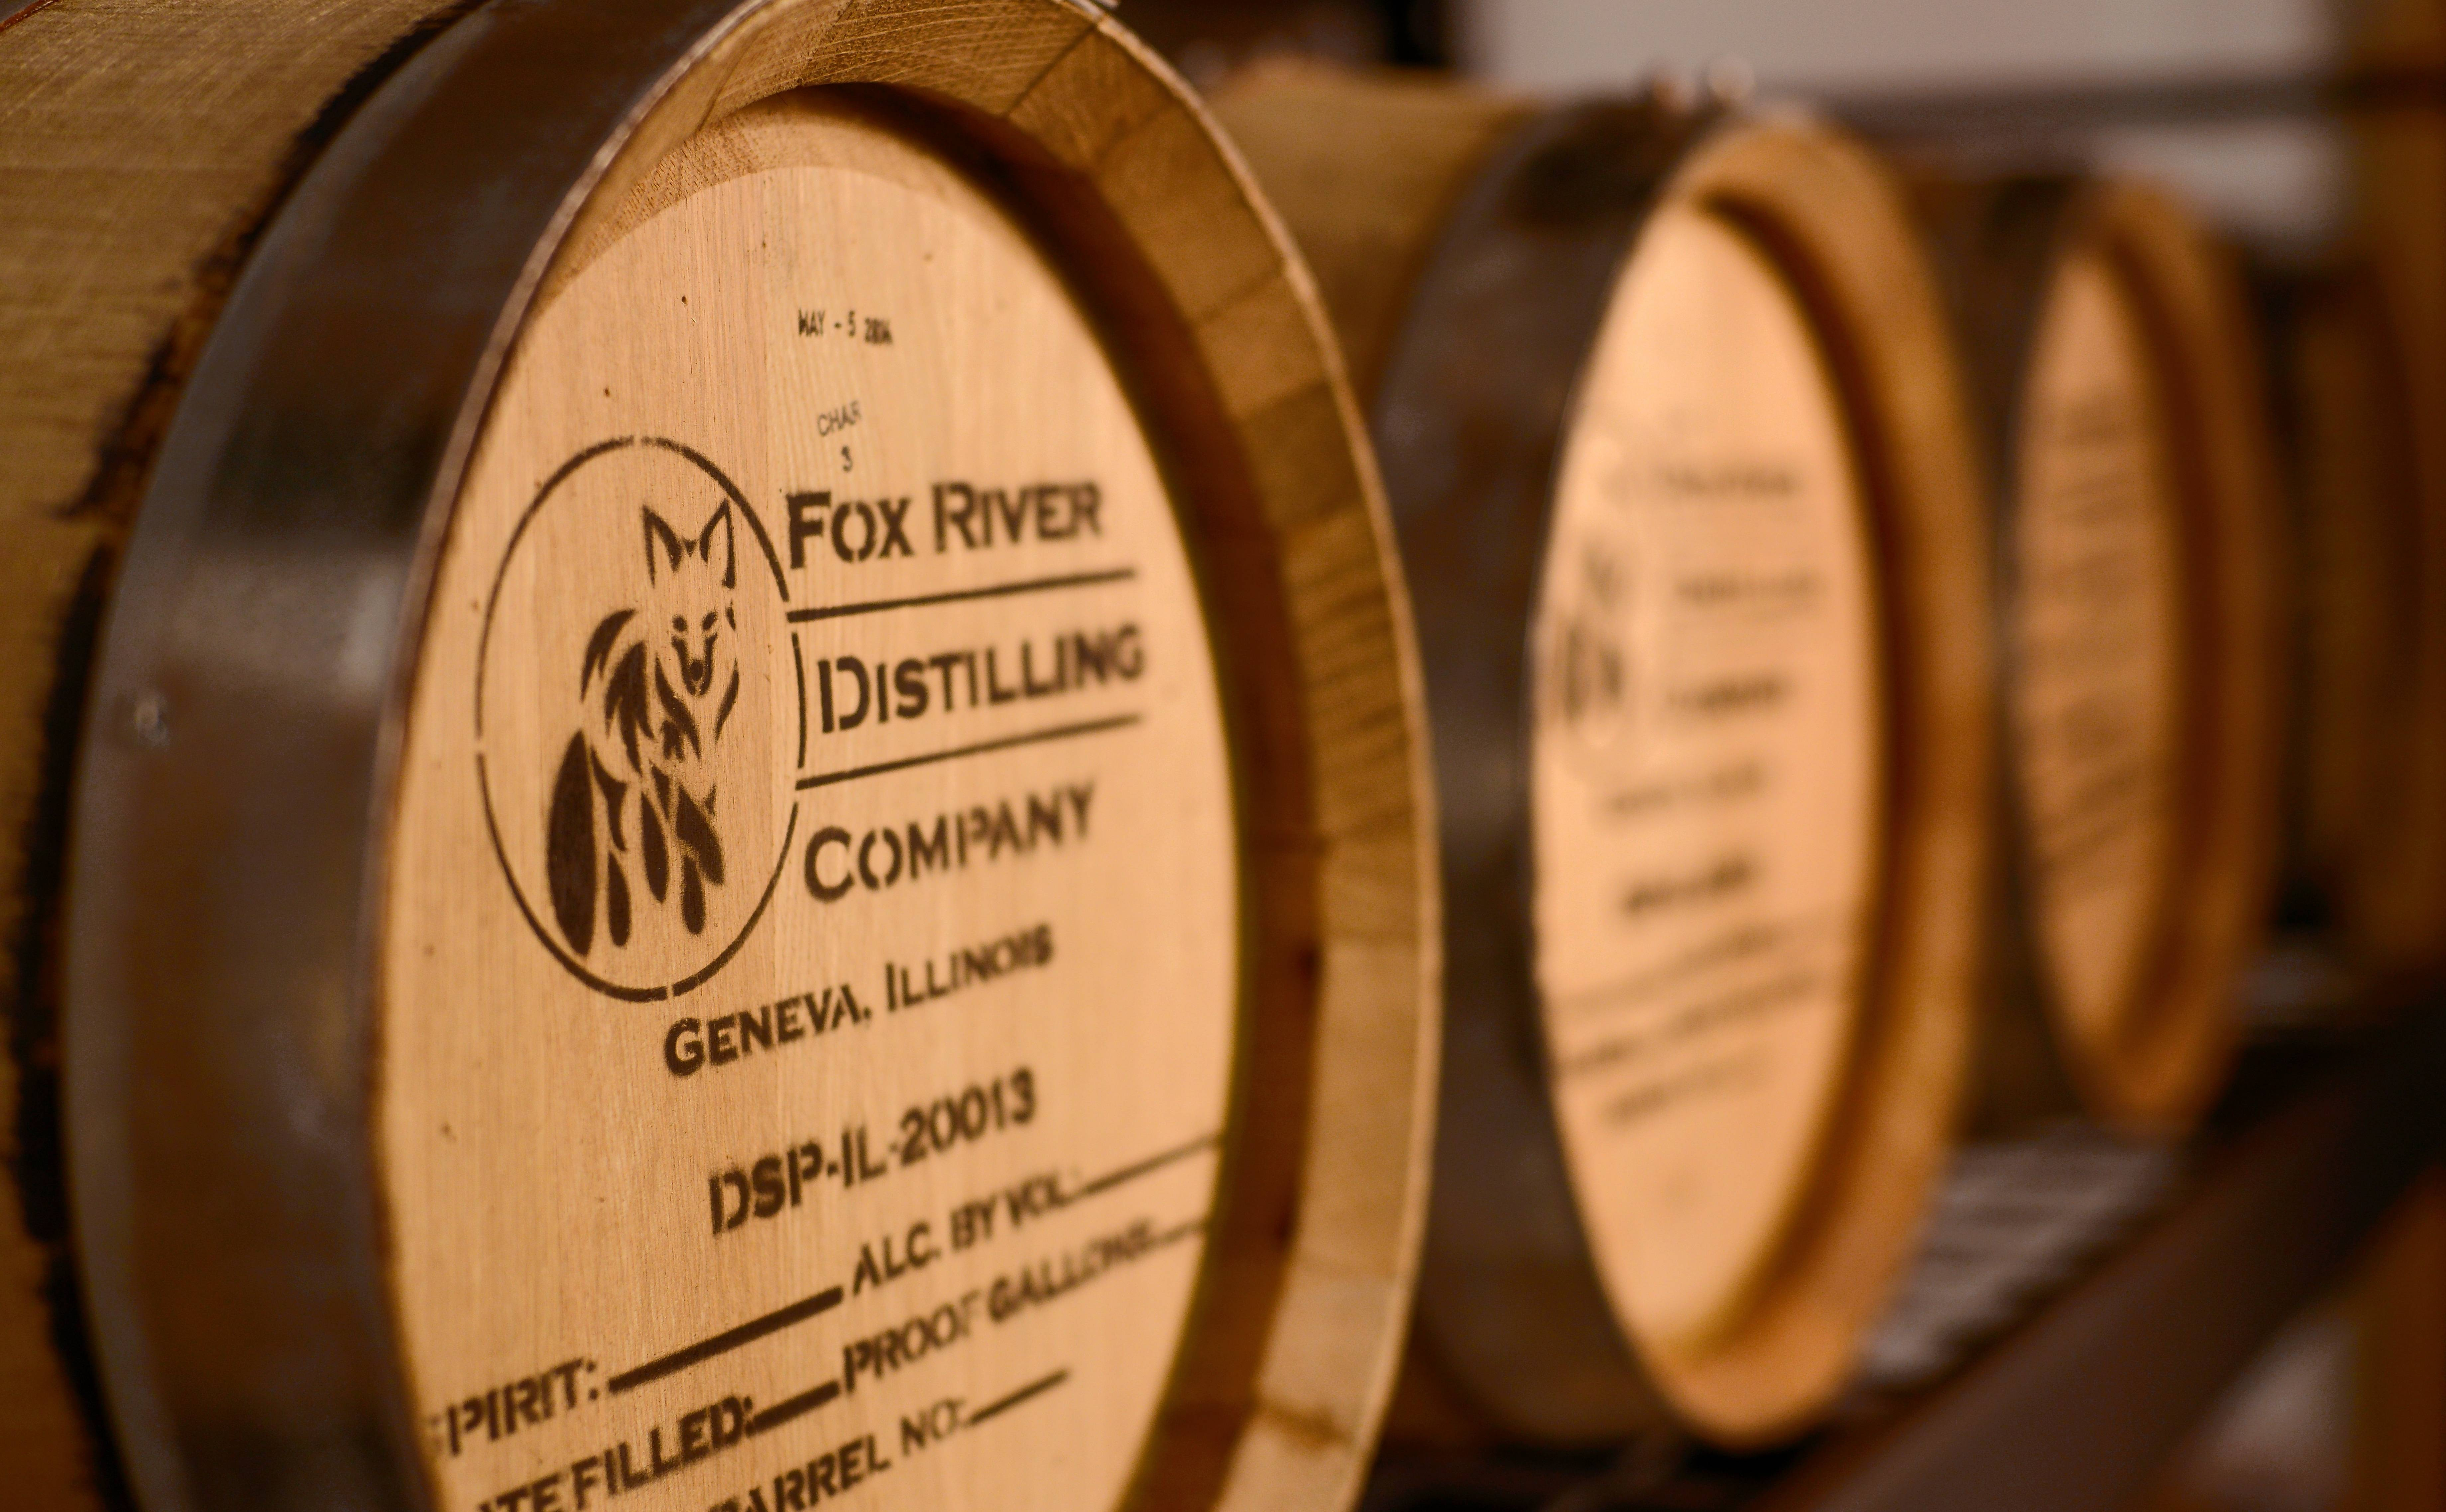 Tours at Fox River Distilling in Geneva include a look at the production area and information on what makes craft distilling different from mass production.